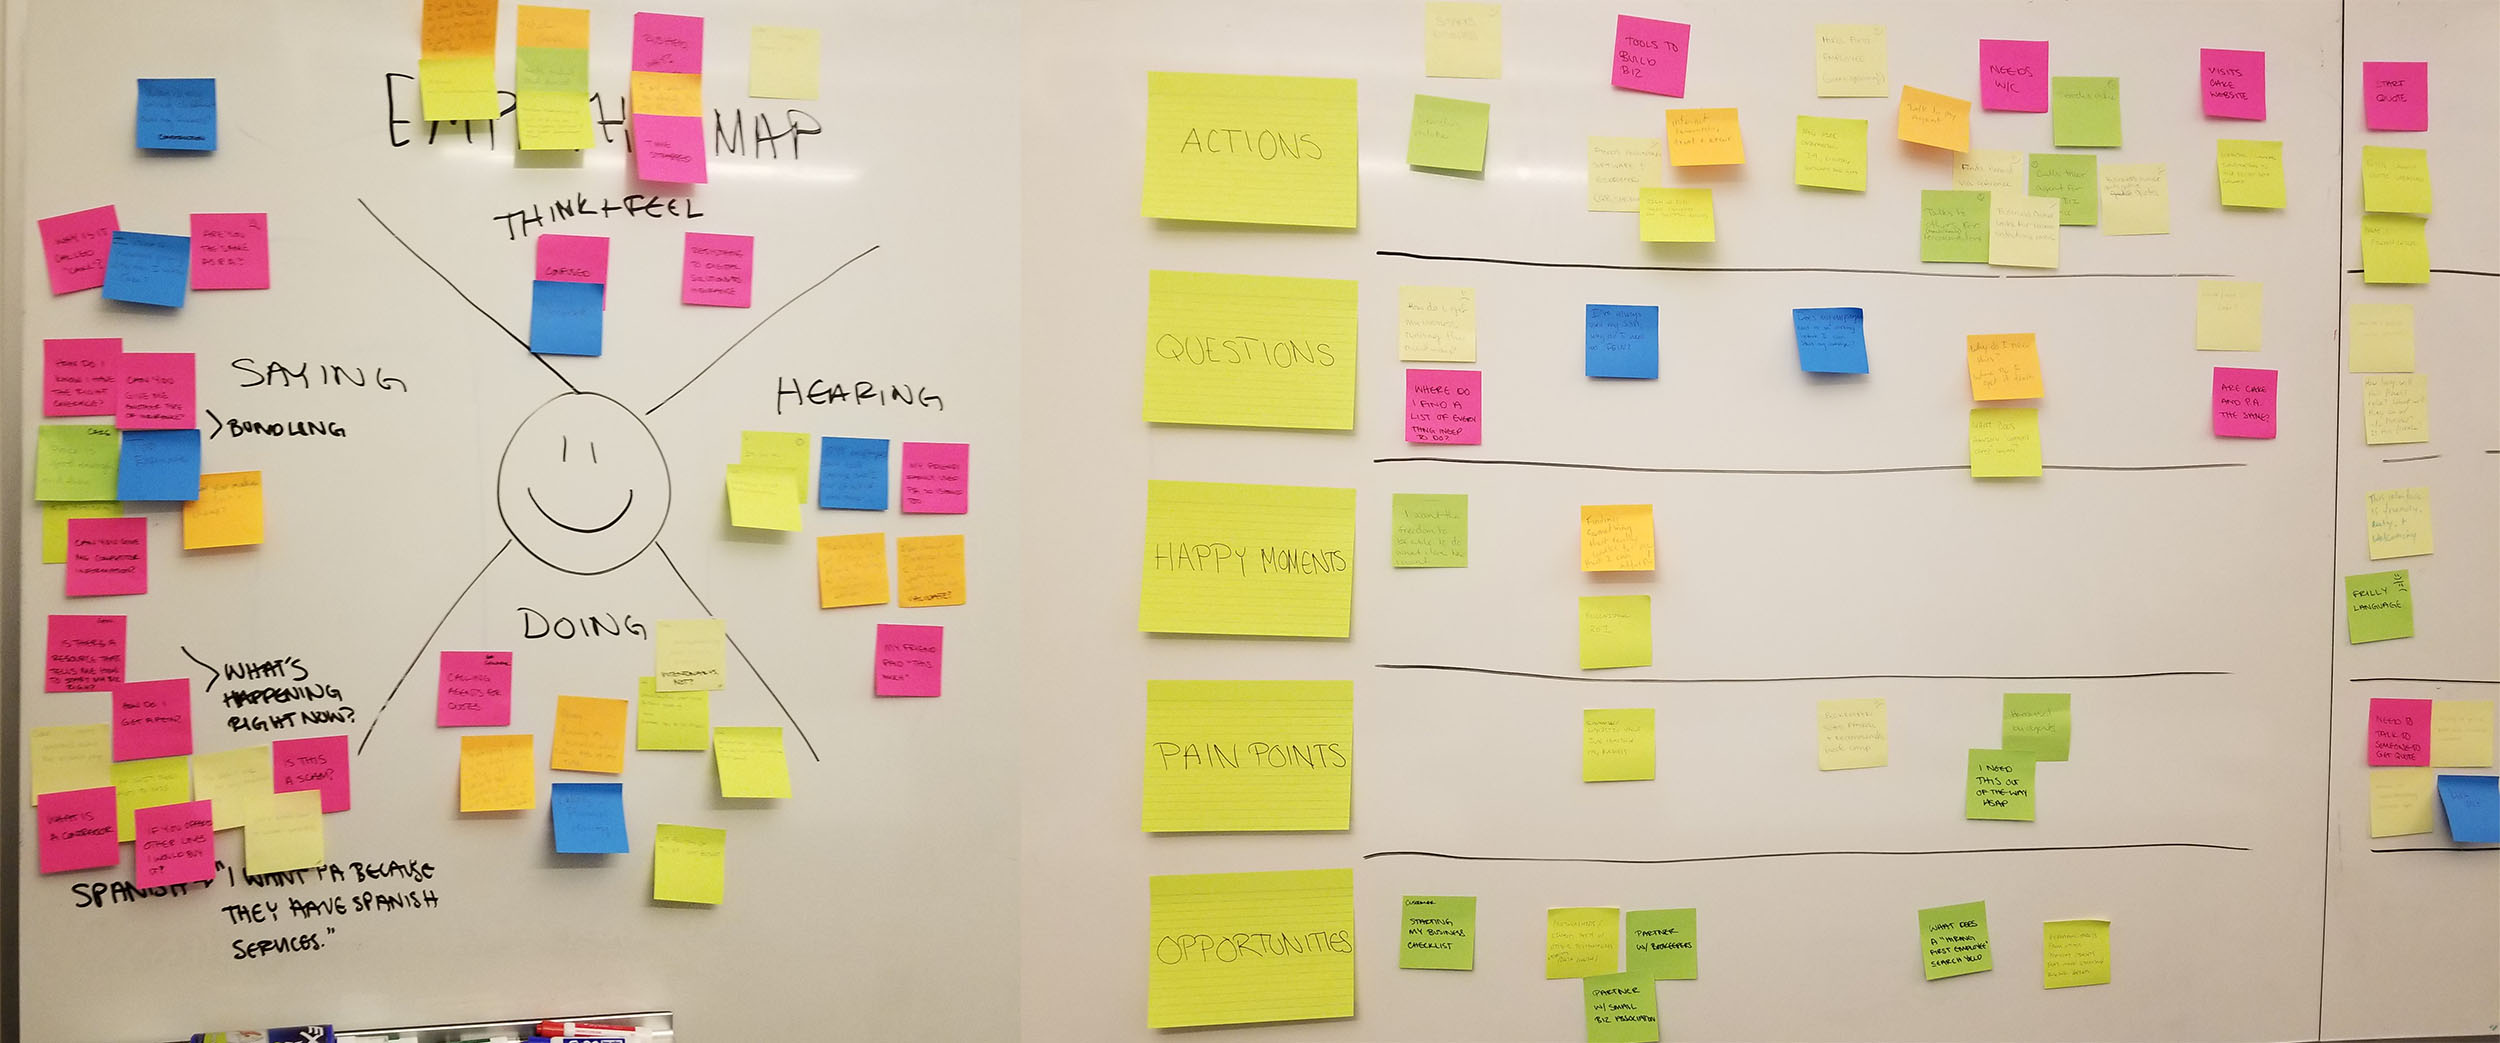 User Research - Developing personas, user journeys, and finding pain points.